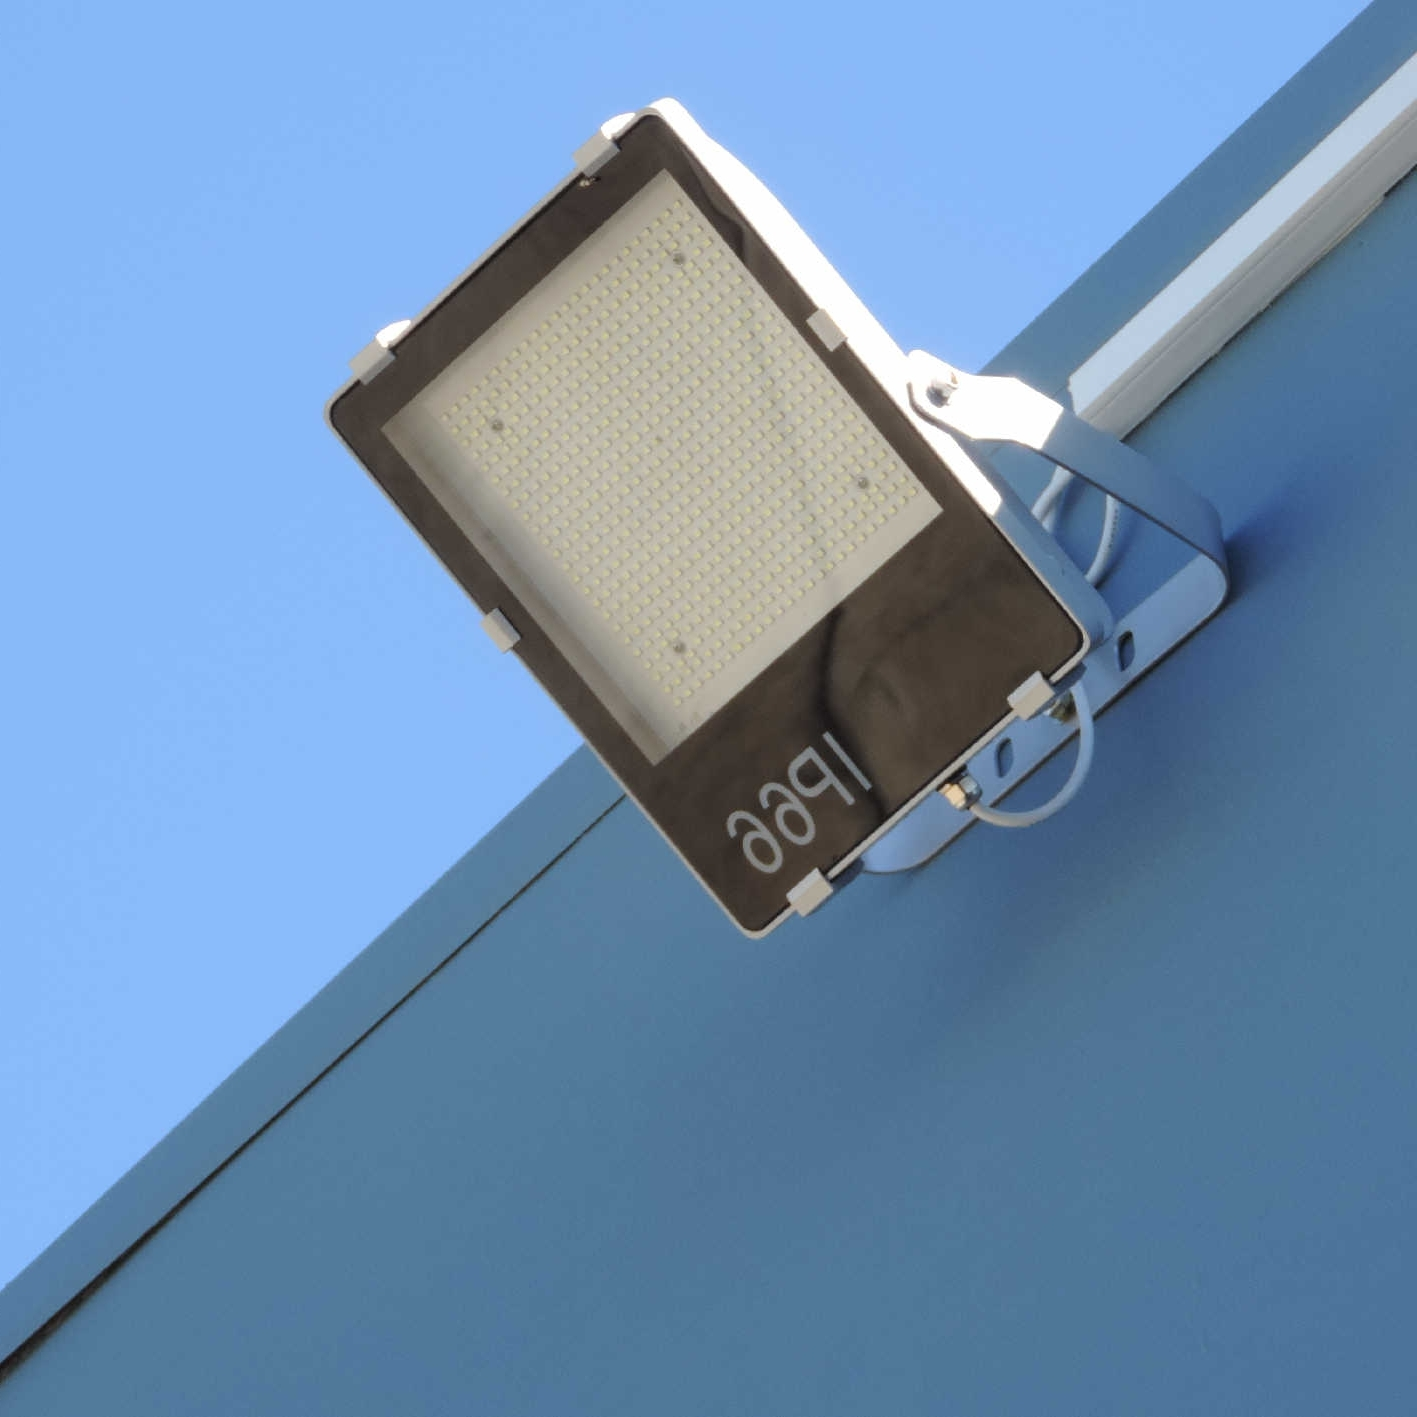 Recent Light : Black Wall Mounted Flood Lights Blue Simple Classic With Regard To Outdoor Wall Flood Lights (View 19 of 20)